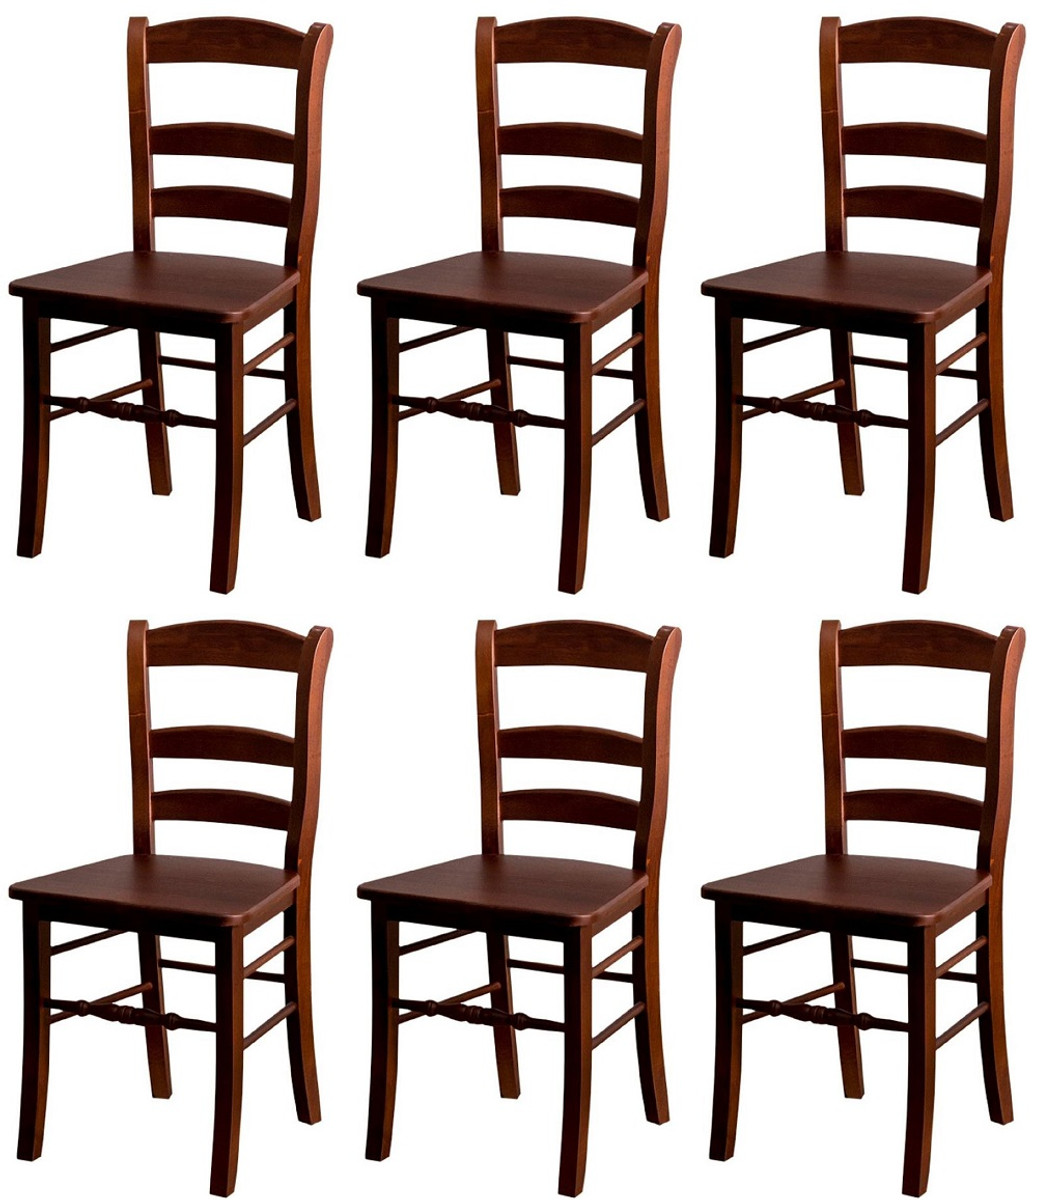 Casa Padrino Country Style Dining Room Chair Set Brown 46 X 41 X H 91 Cm Solid Wood Kitchen Chairs Set Of 6 Dining Room Furniture In Country Style